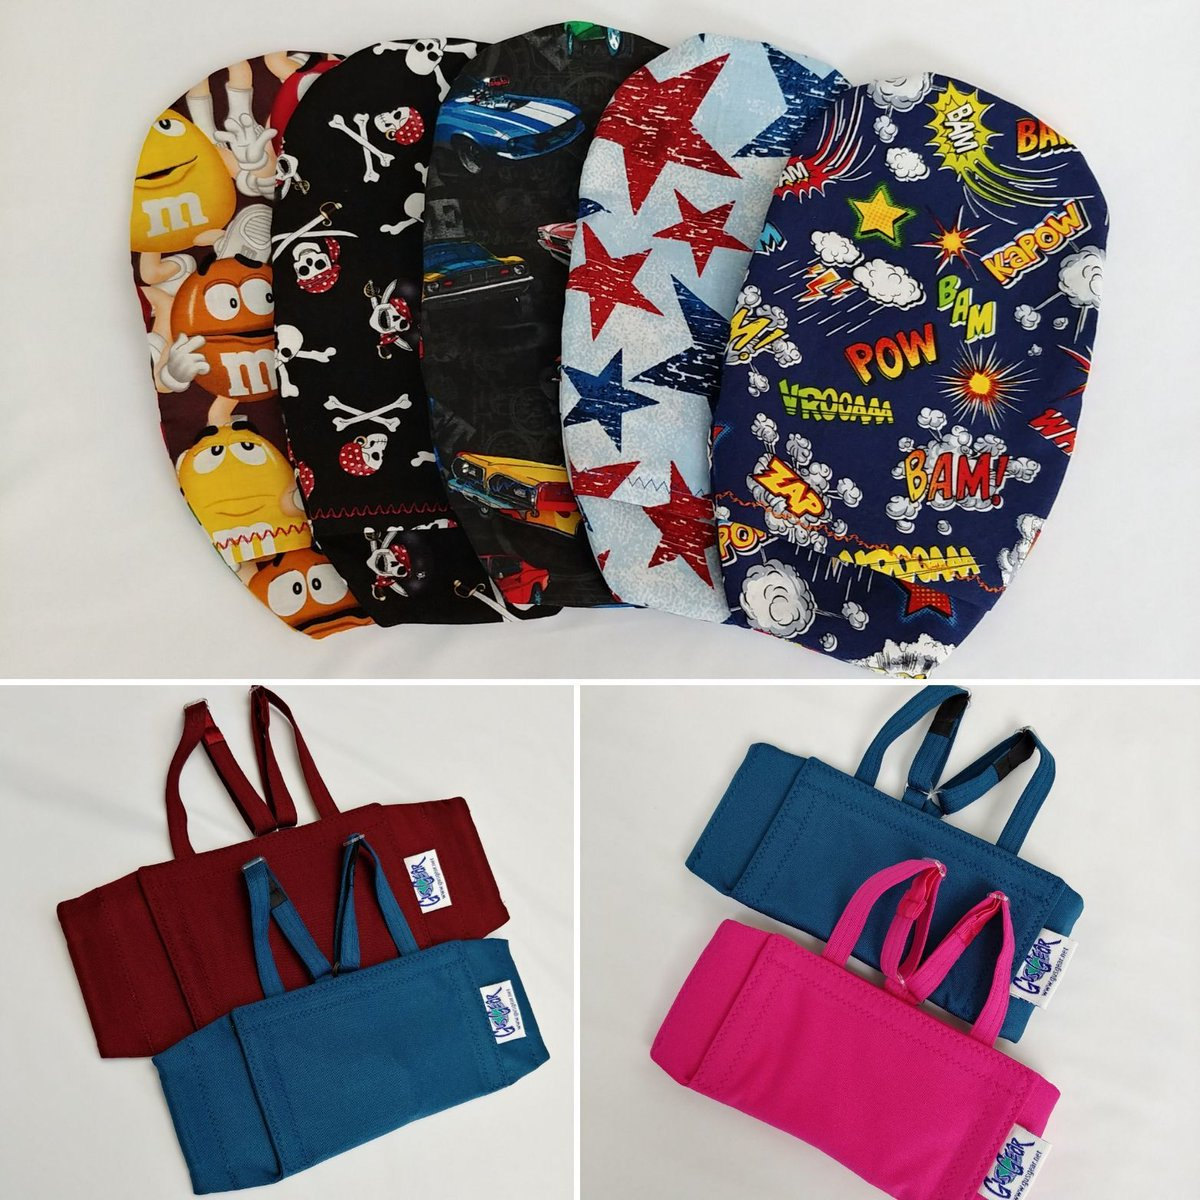 52b18cfc8 -Ostomy pouch covers in M&M's print, pirates, muscle cars, sponged stars  and superhero words on navy -Central line wraps in maroon and teal -Central  line ...